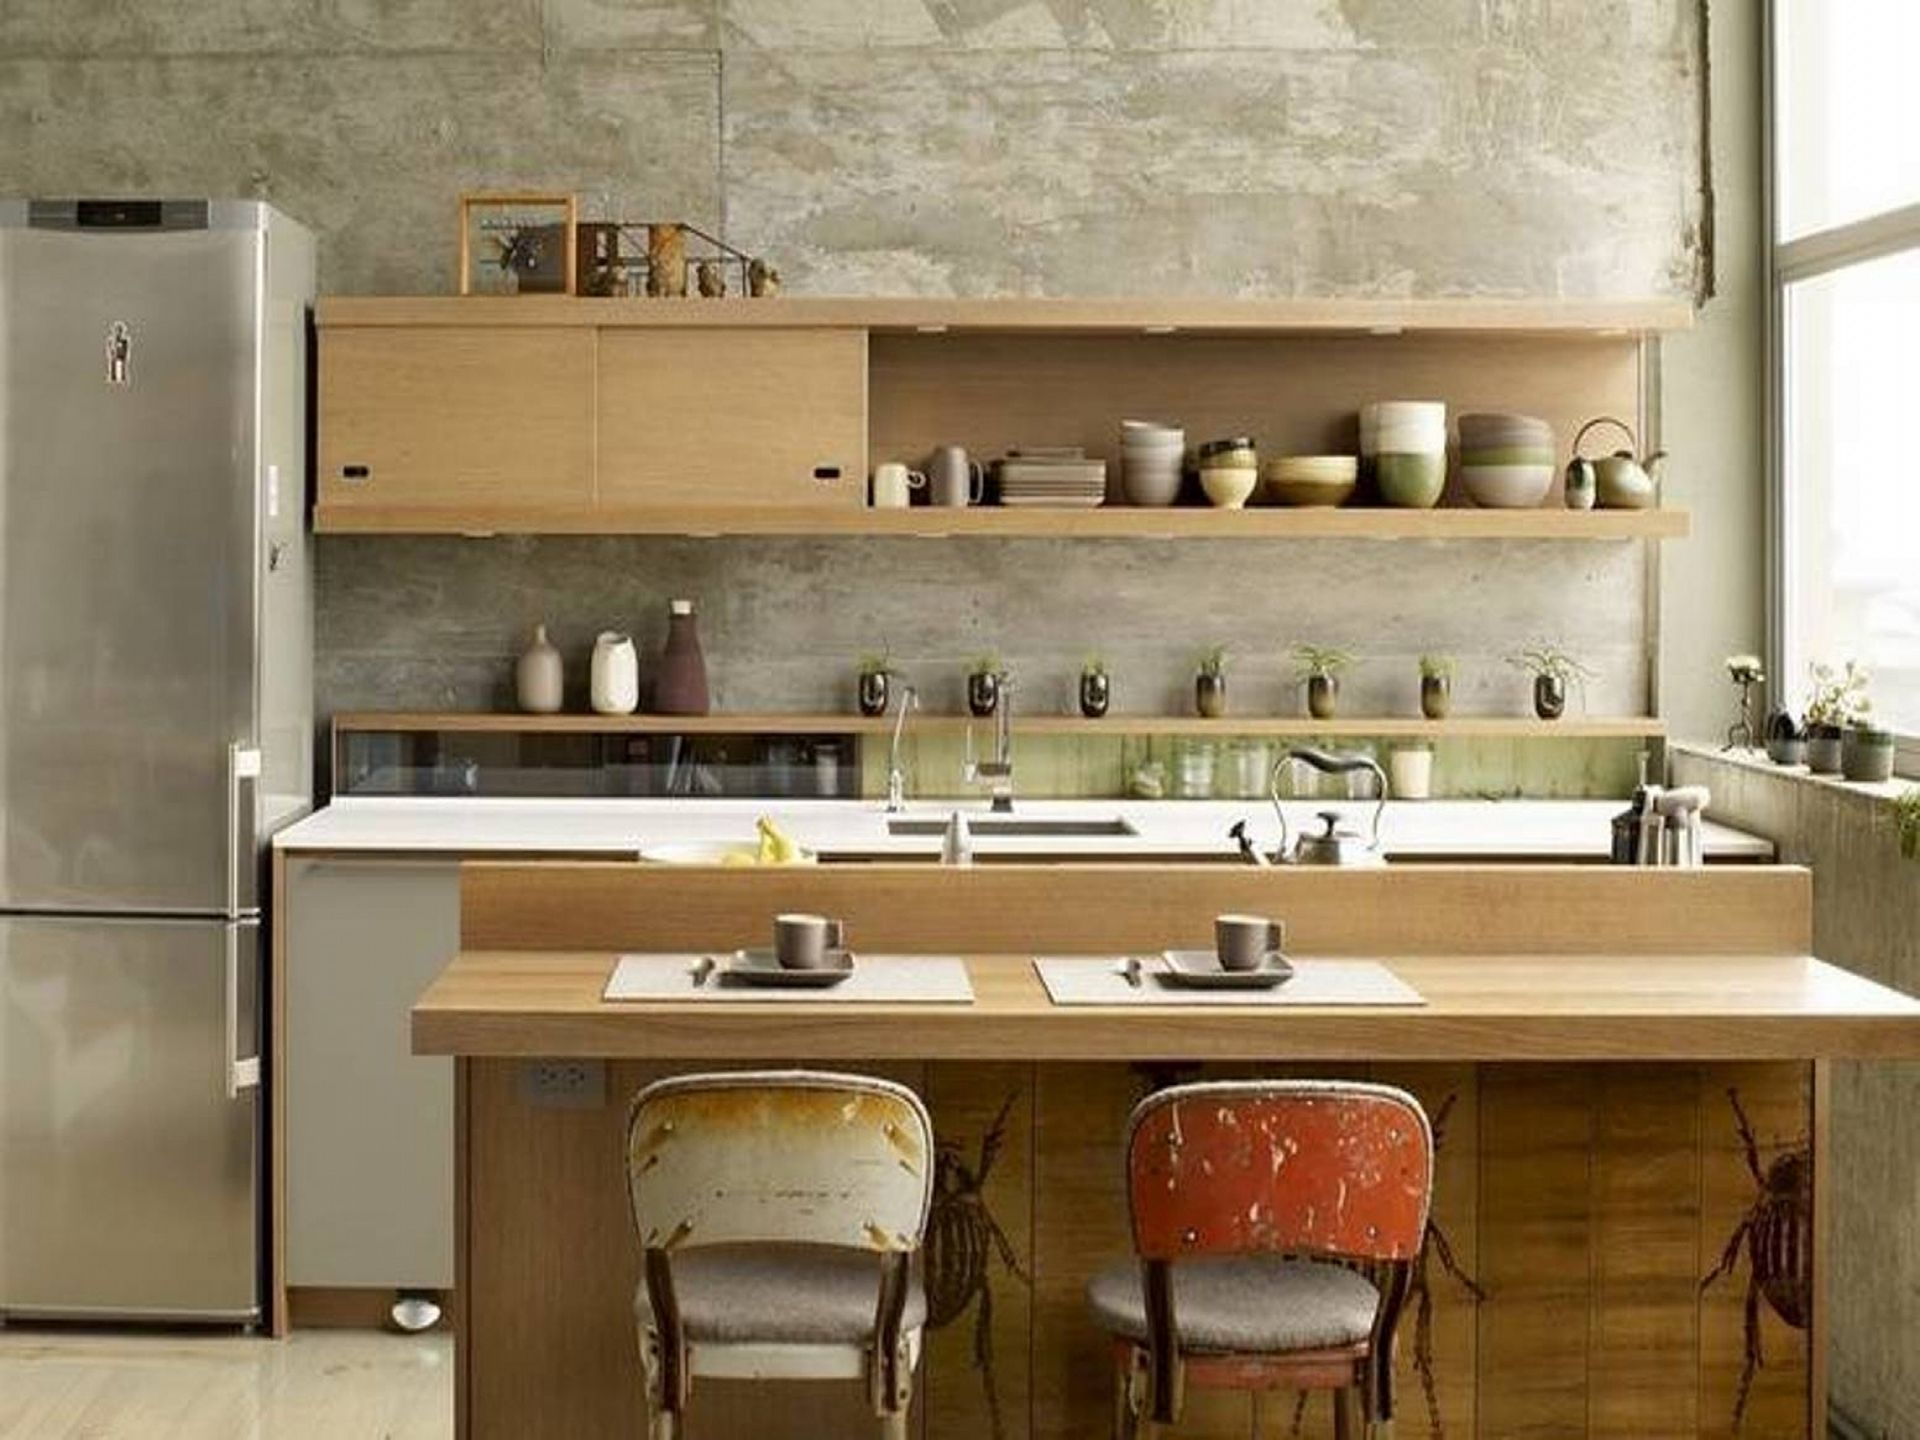 Great Idea 25 Top And Wonderful Japanese Kitchen Style Decoration Ideas Https Dsgndcr Com Kit Modern Japanese Kitchen Modern Kitchen Design Kitchen Interior